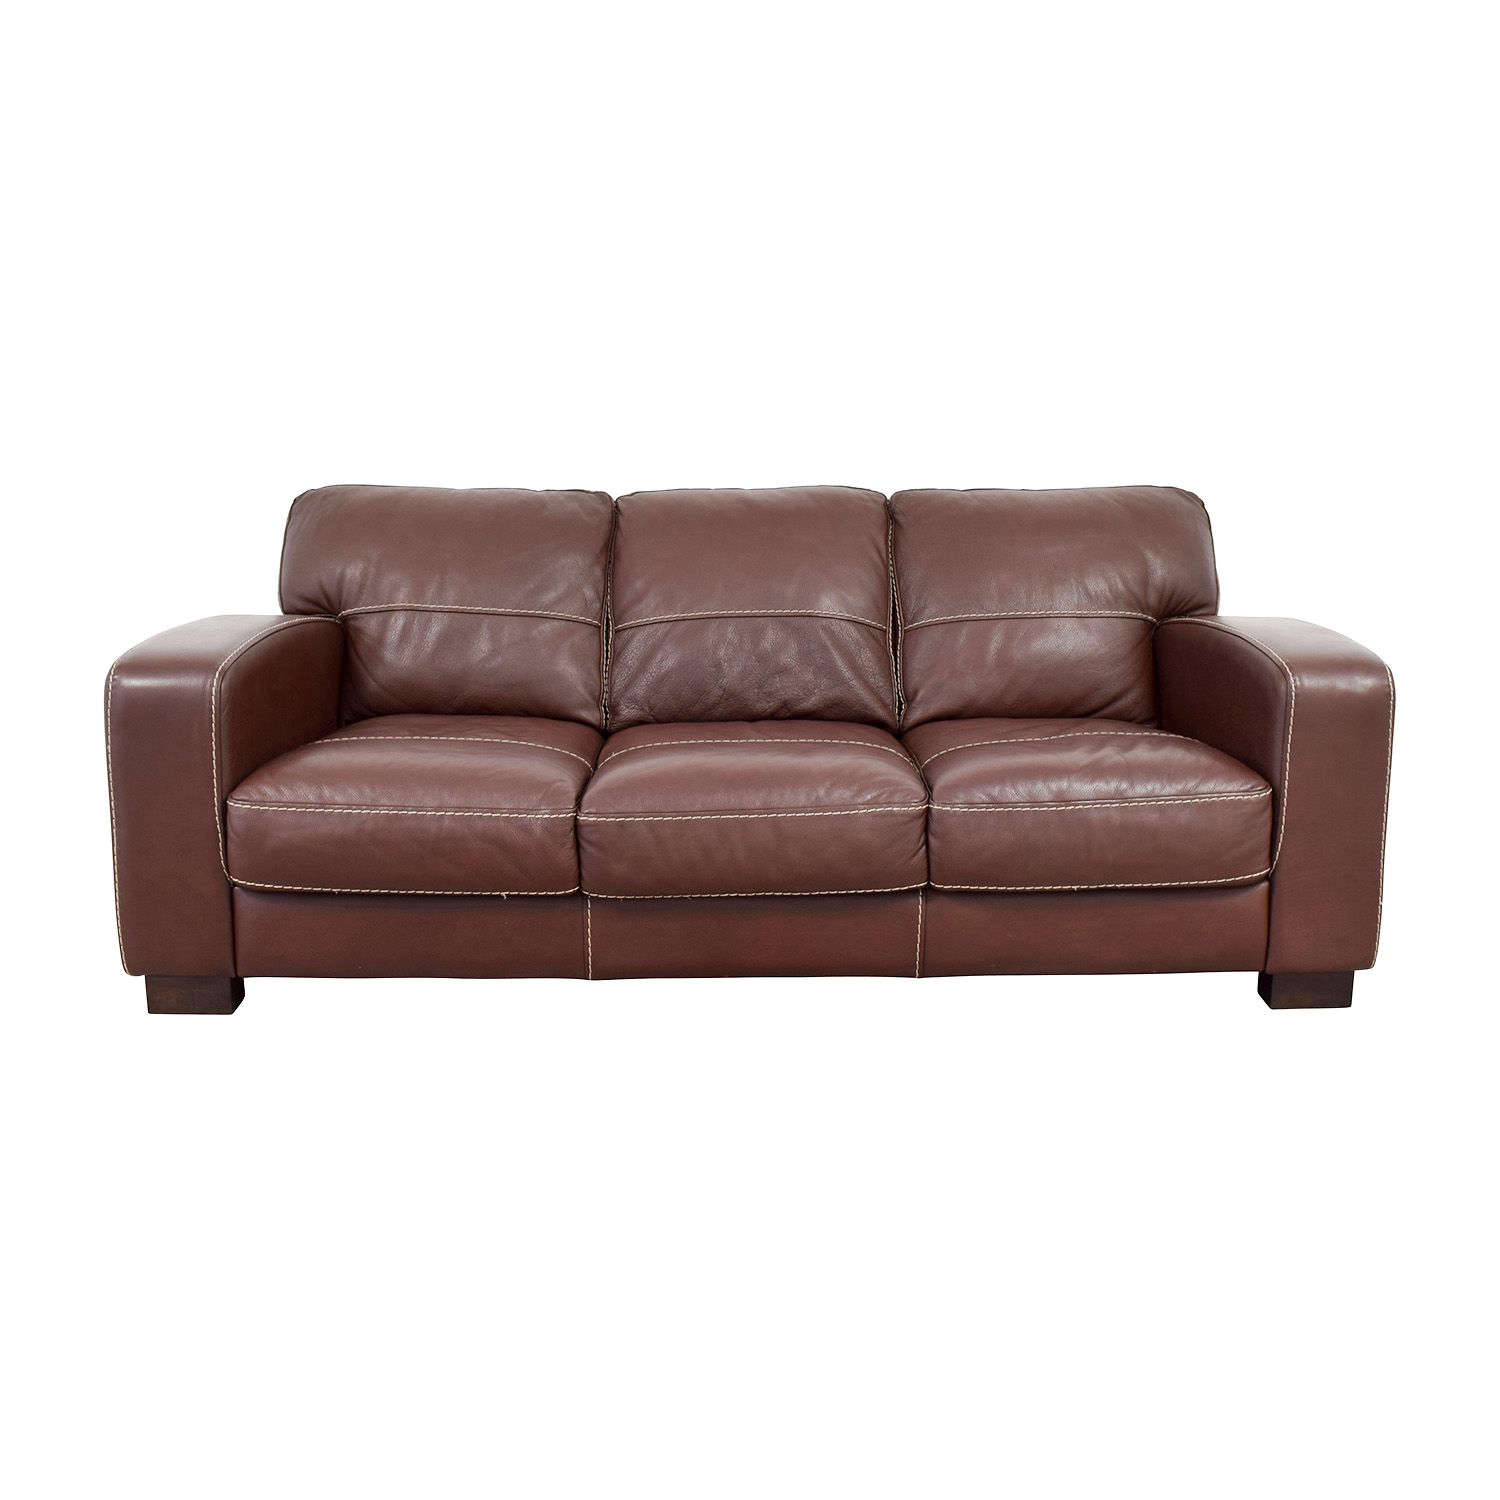 Bobs Furniture Leather Sofa Kennedy Leather Sofa Bob S